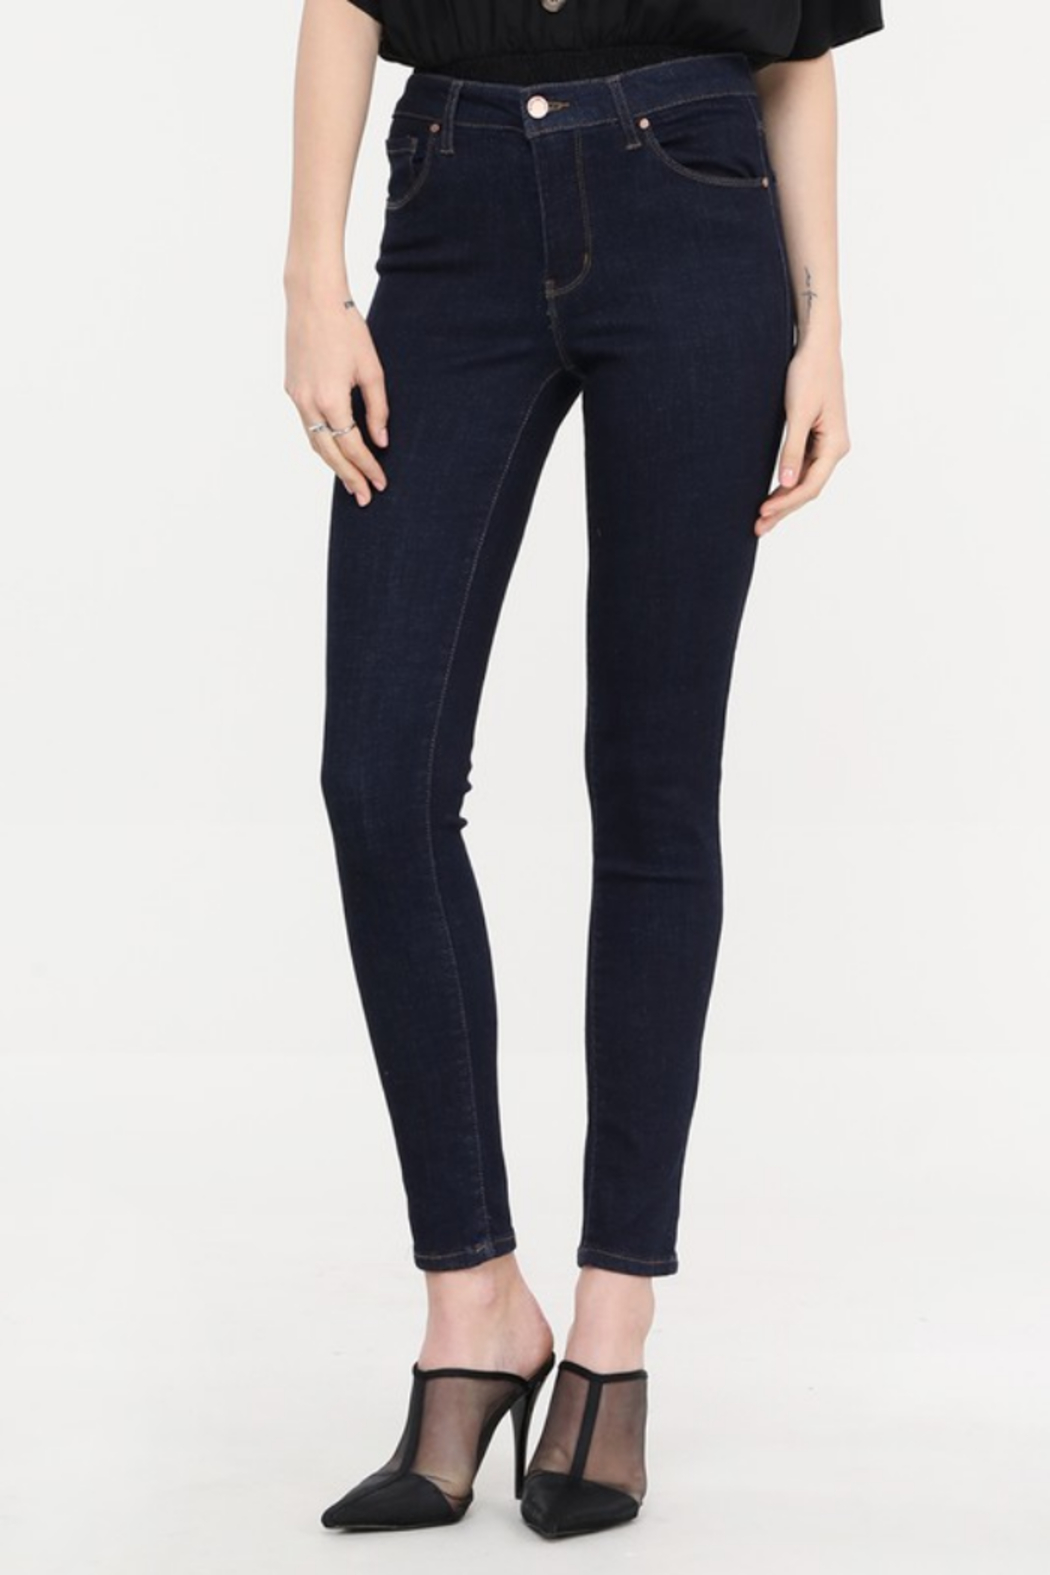 Cest Toi Bailey Mid Rise Skinny Jean - Front Cropped Image